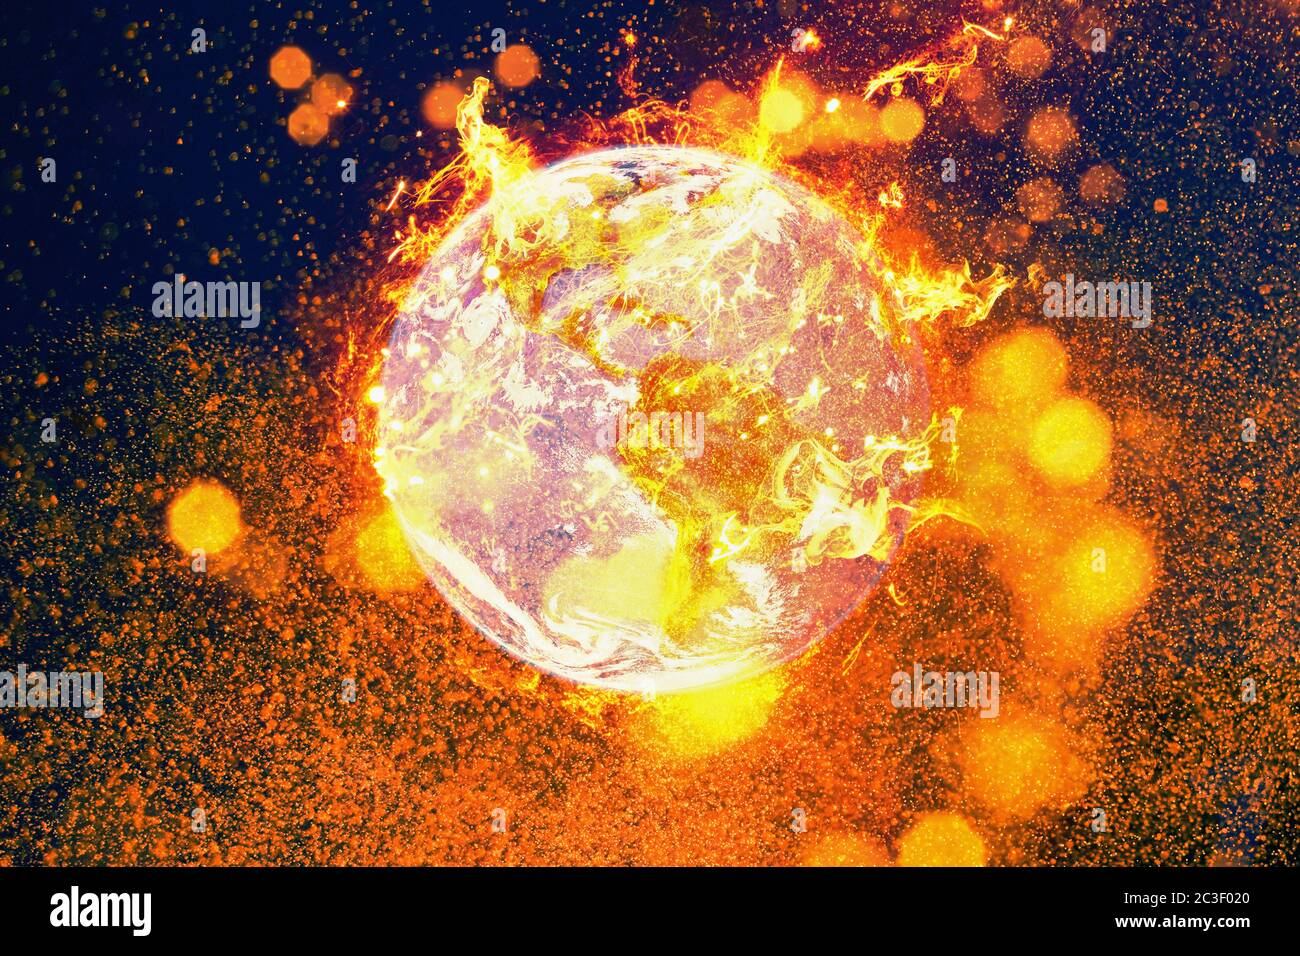 Burning planet earth fire inferno. Global warming and environmental disaster concept. Stock Photo